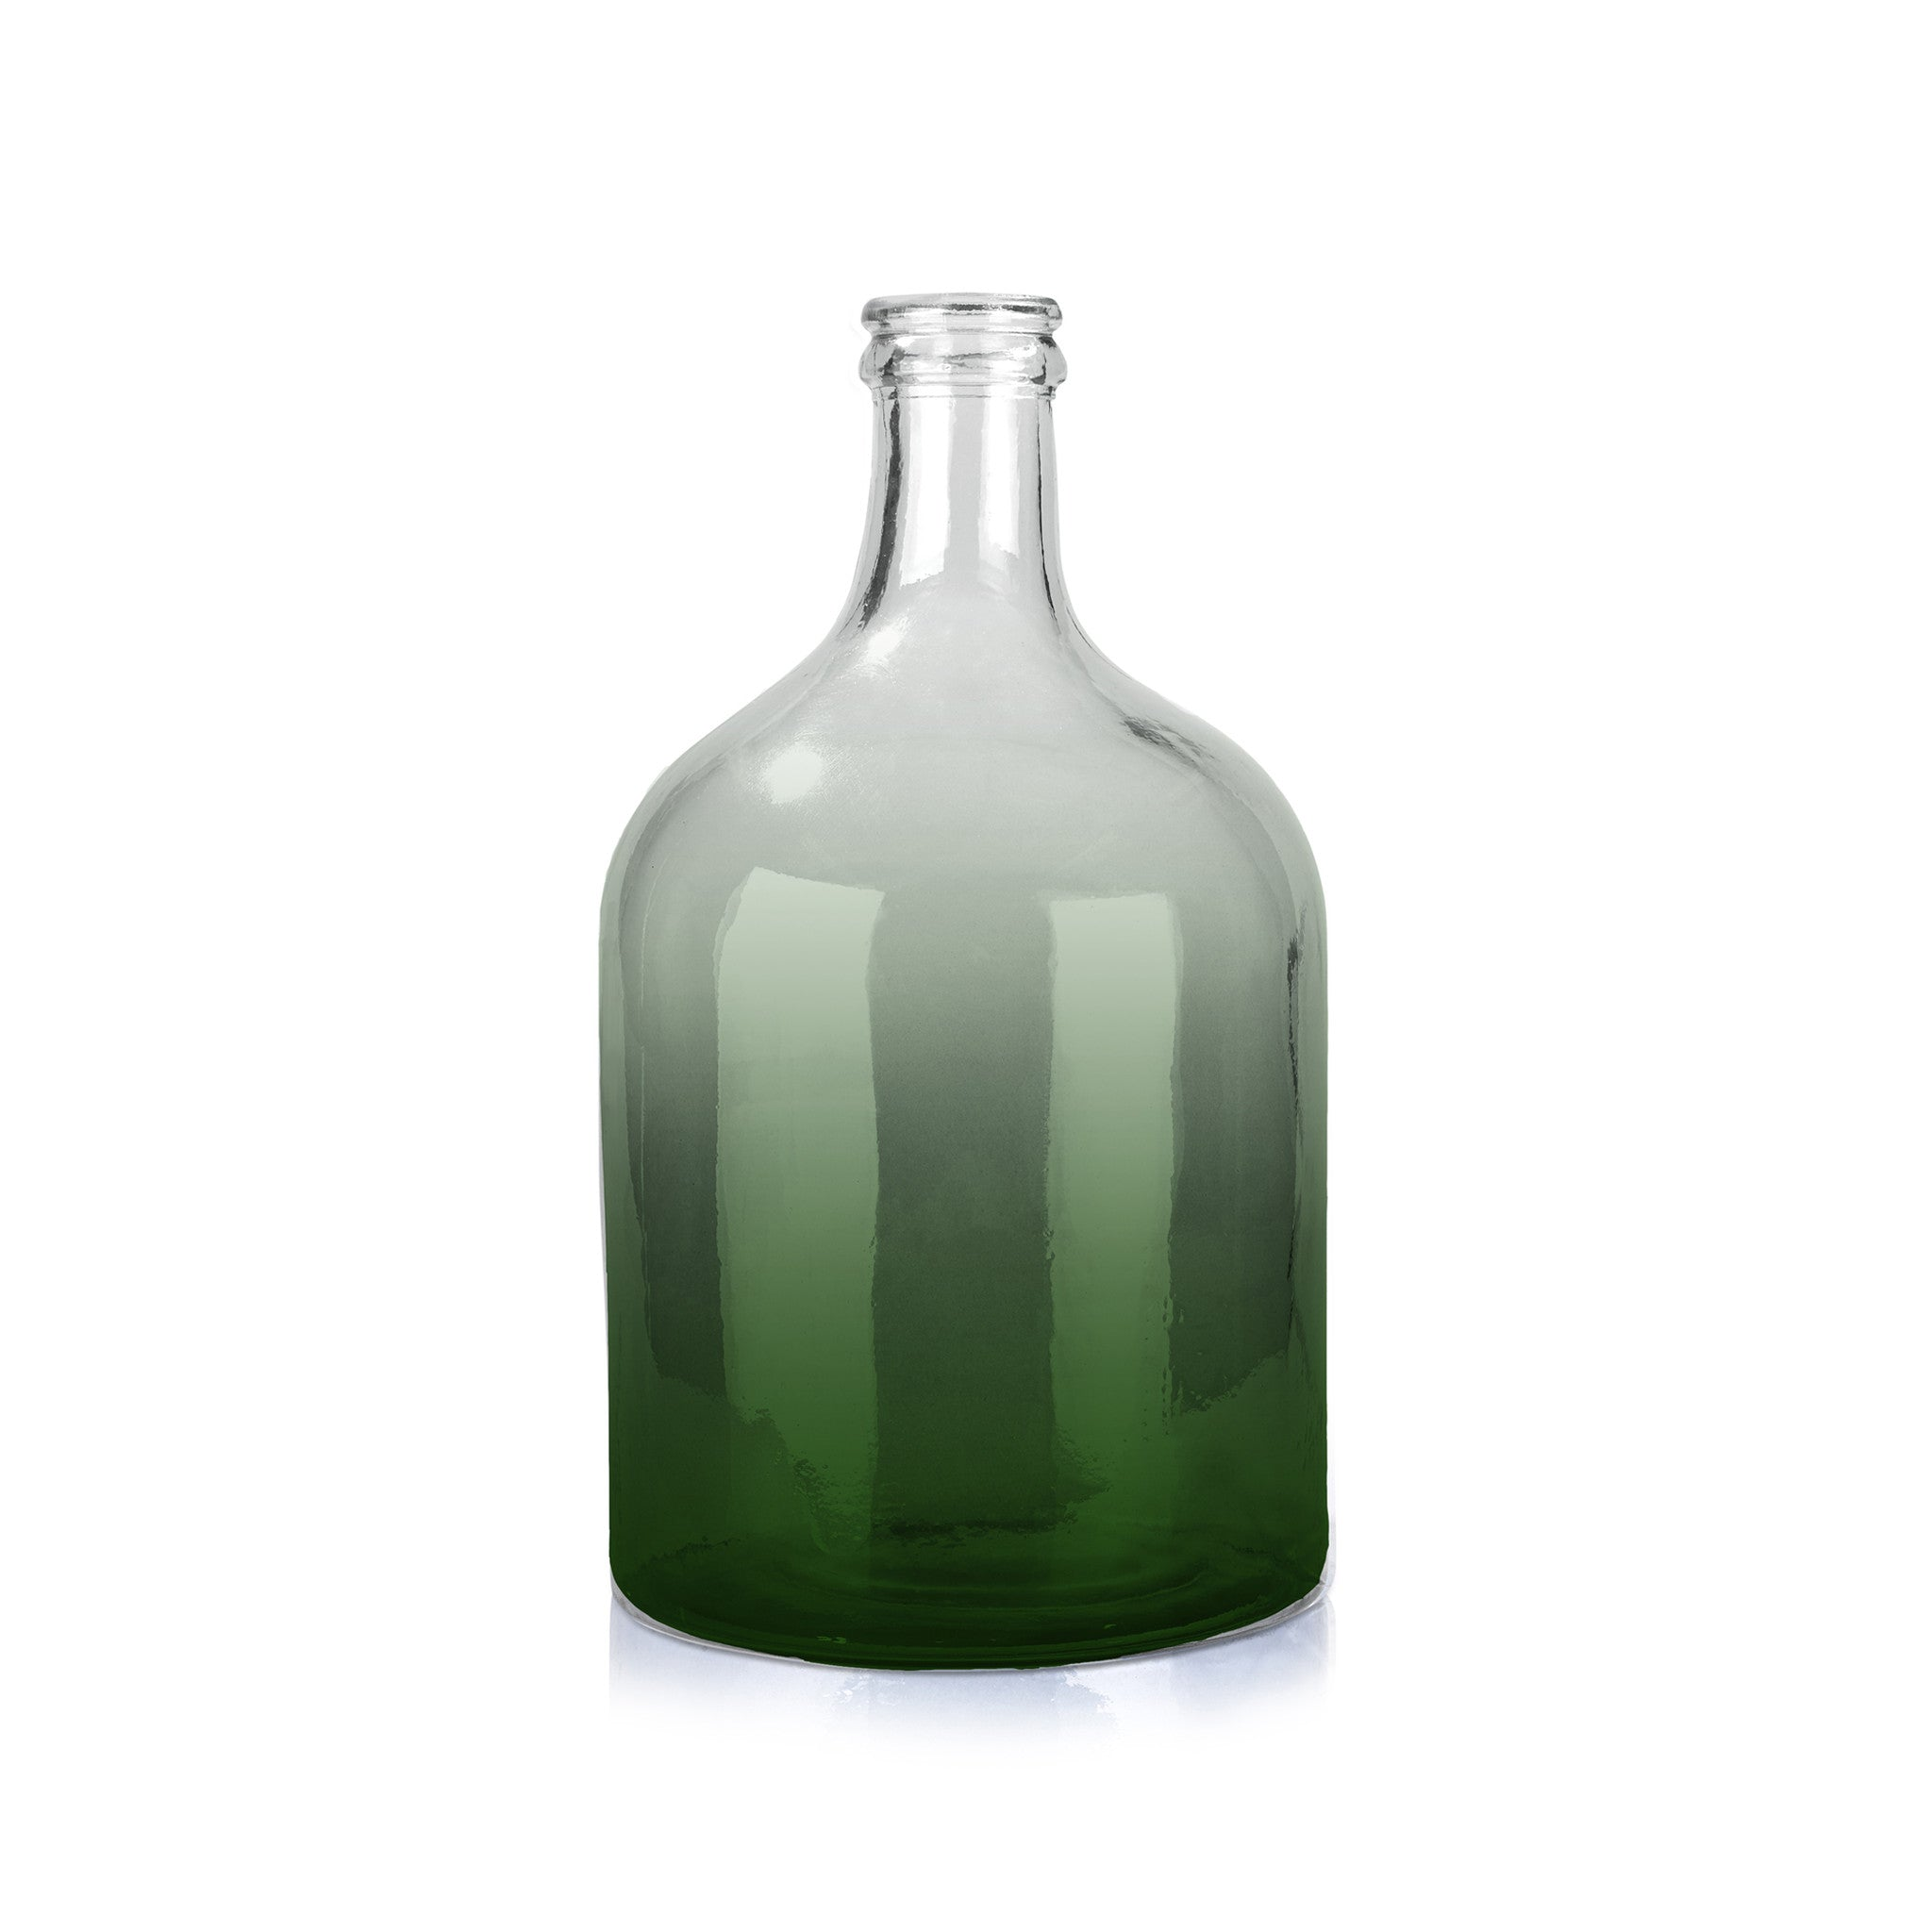 Recycled Green Glass Bottle – Summerill & Bishop